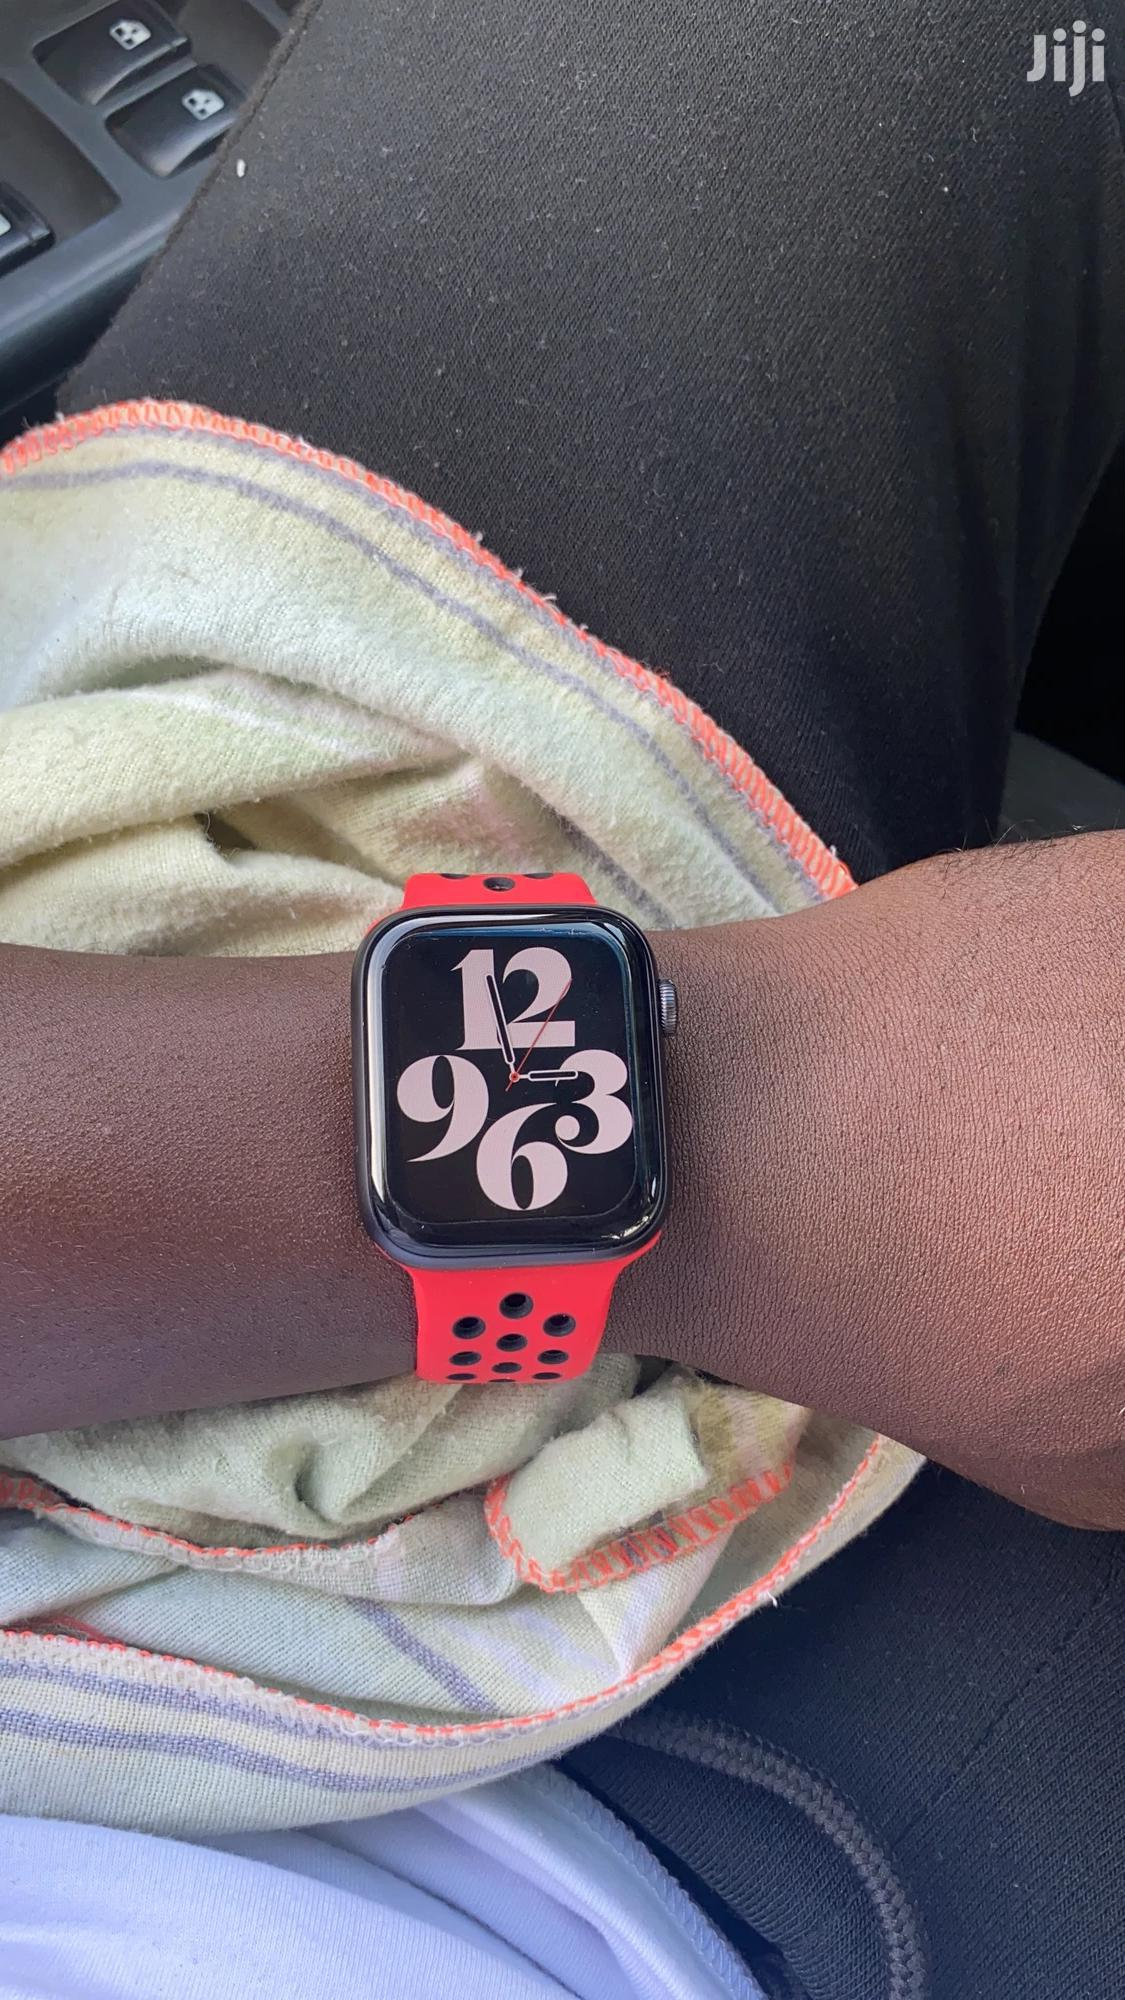 Archive: Apple Watch Series 6(44mm)Gps+Cellular Space Gray